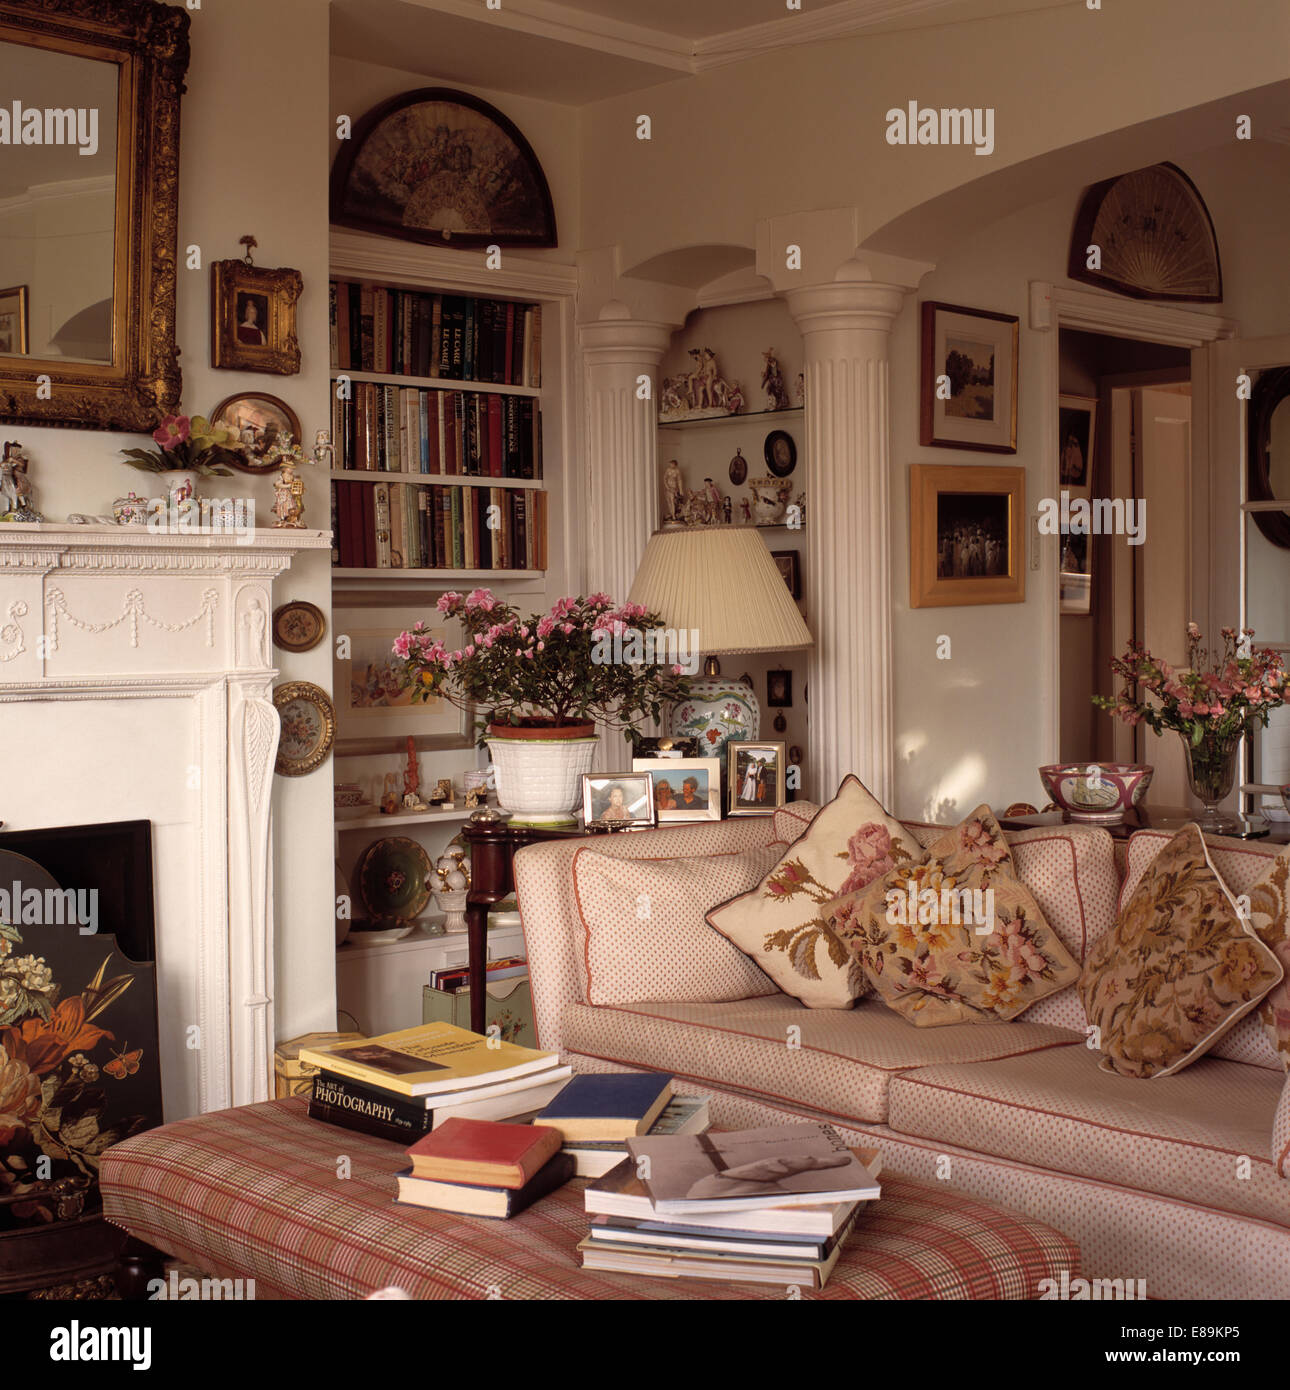 Stock Photo   Tapestry Cushions On Cream Sofa In Country Living Room With  White Fluted Pillows And Upholstered Stool With Pile Of Books